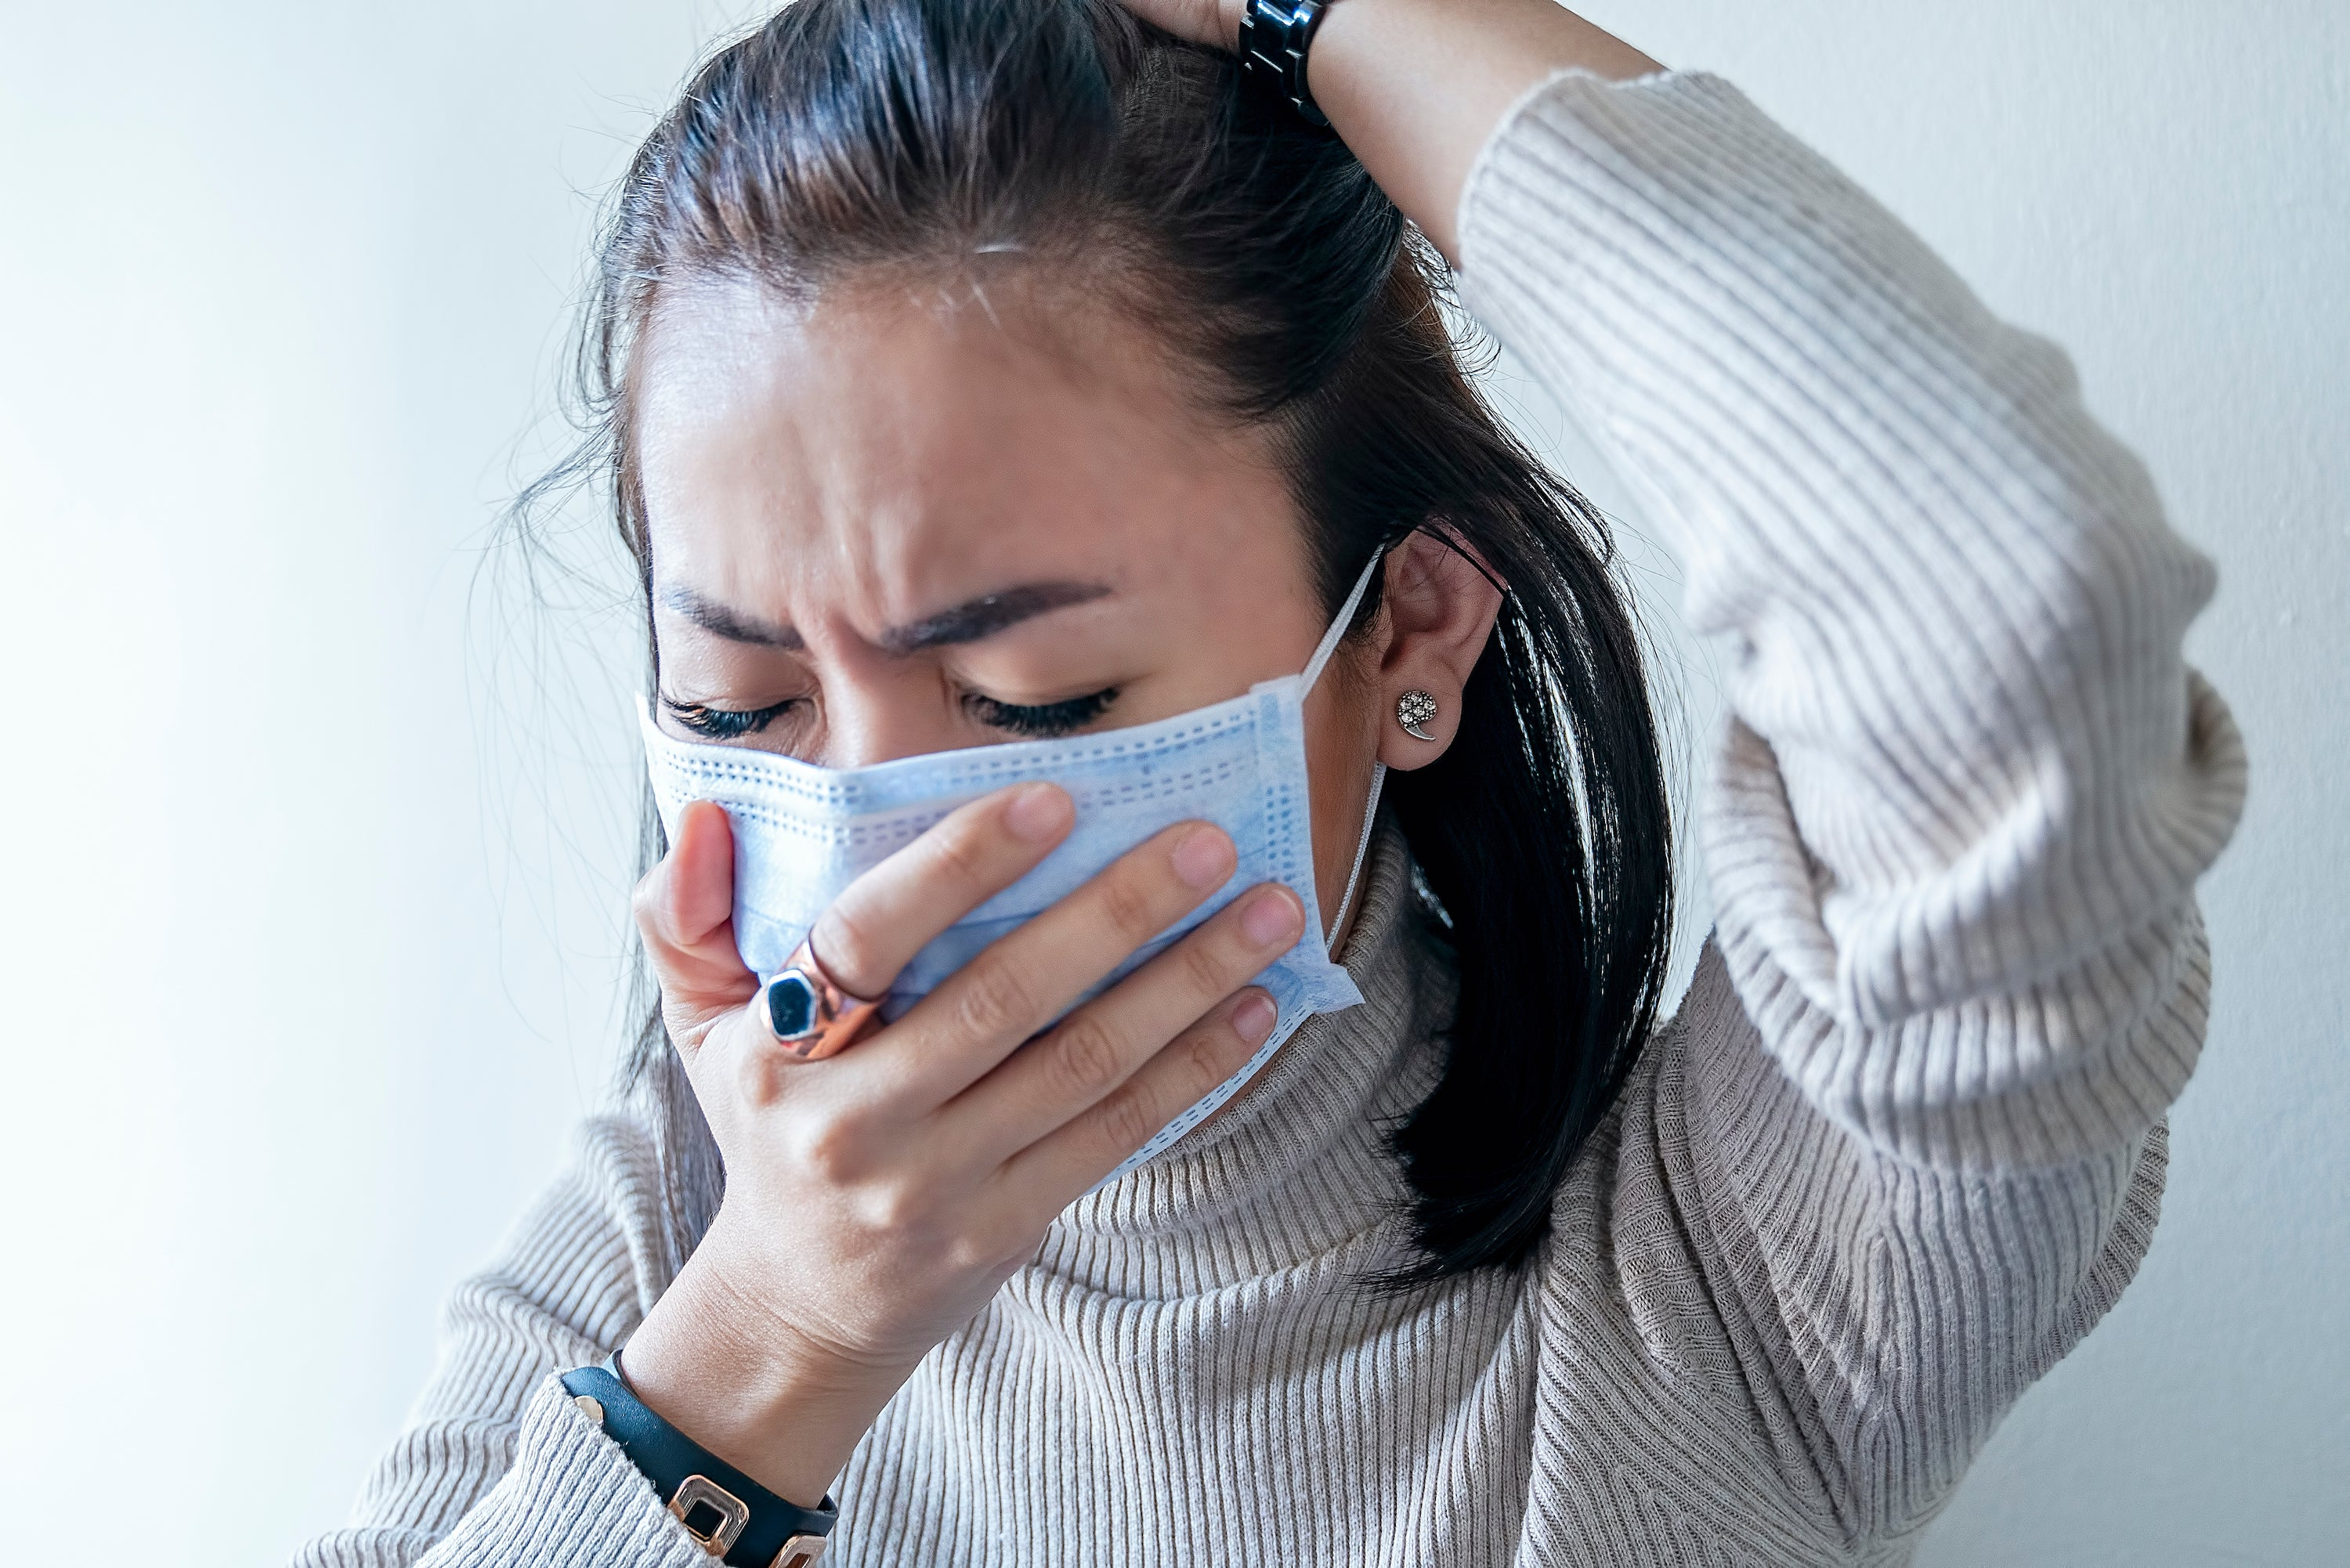 How We Can Avoid a 'Twindemic' of COVID and Flu